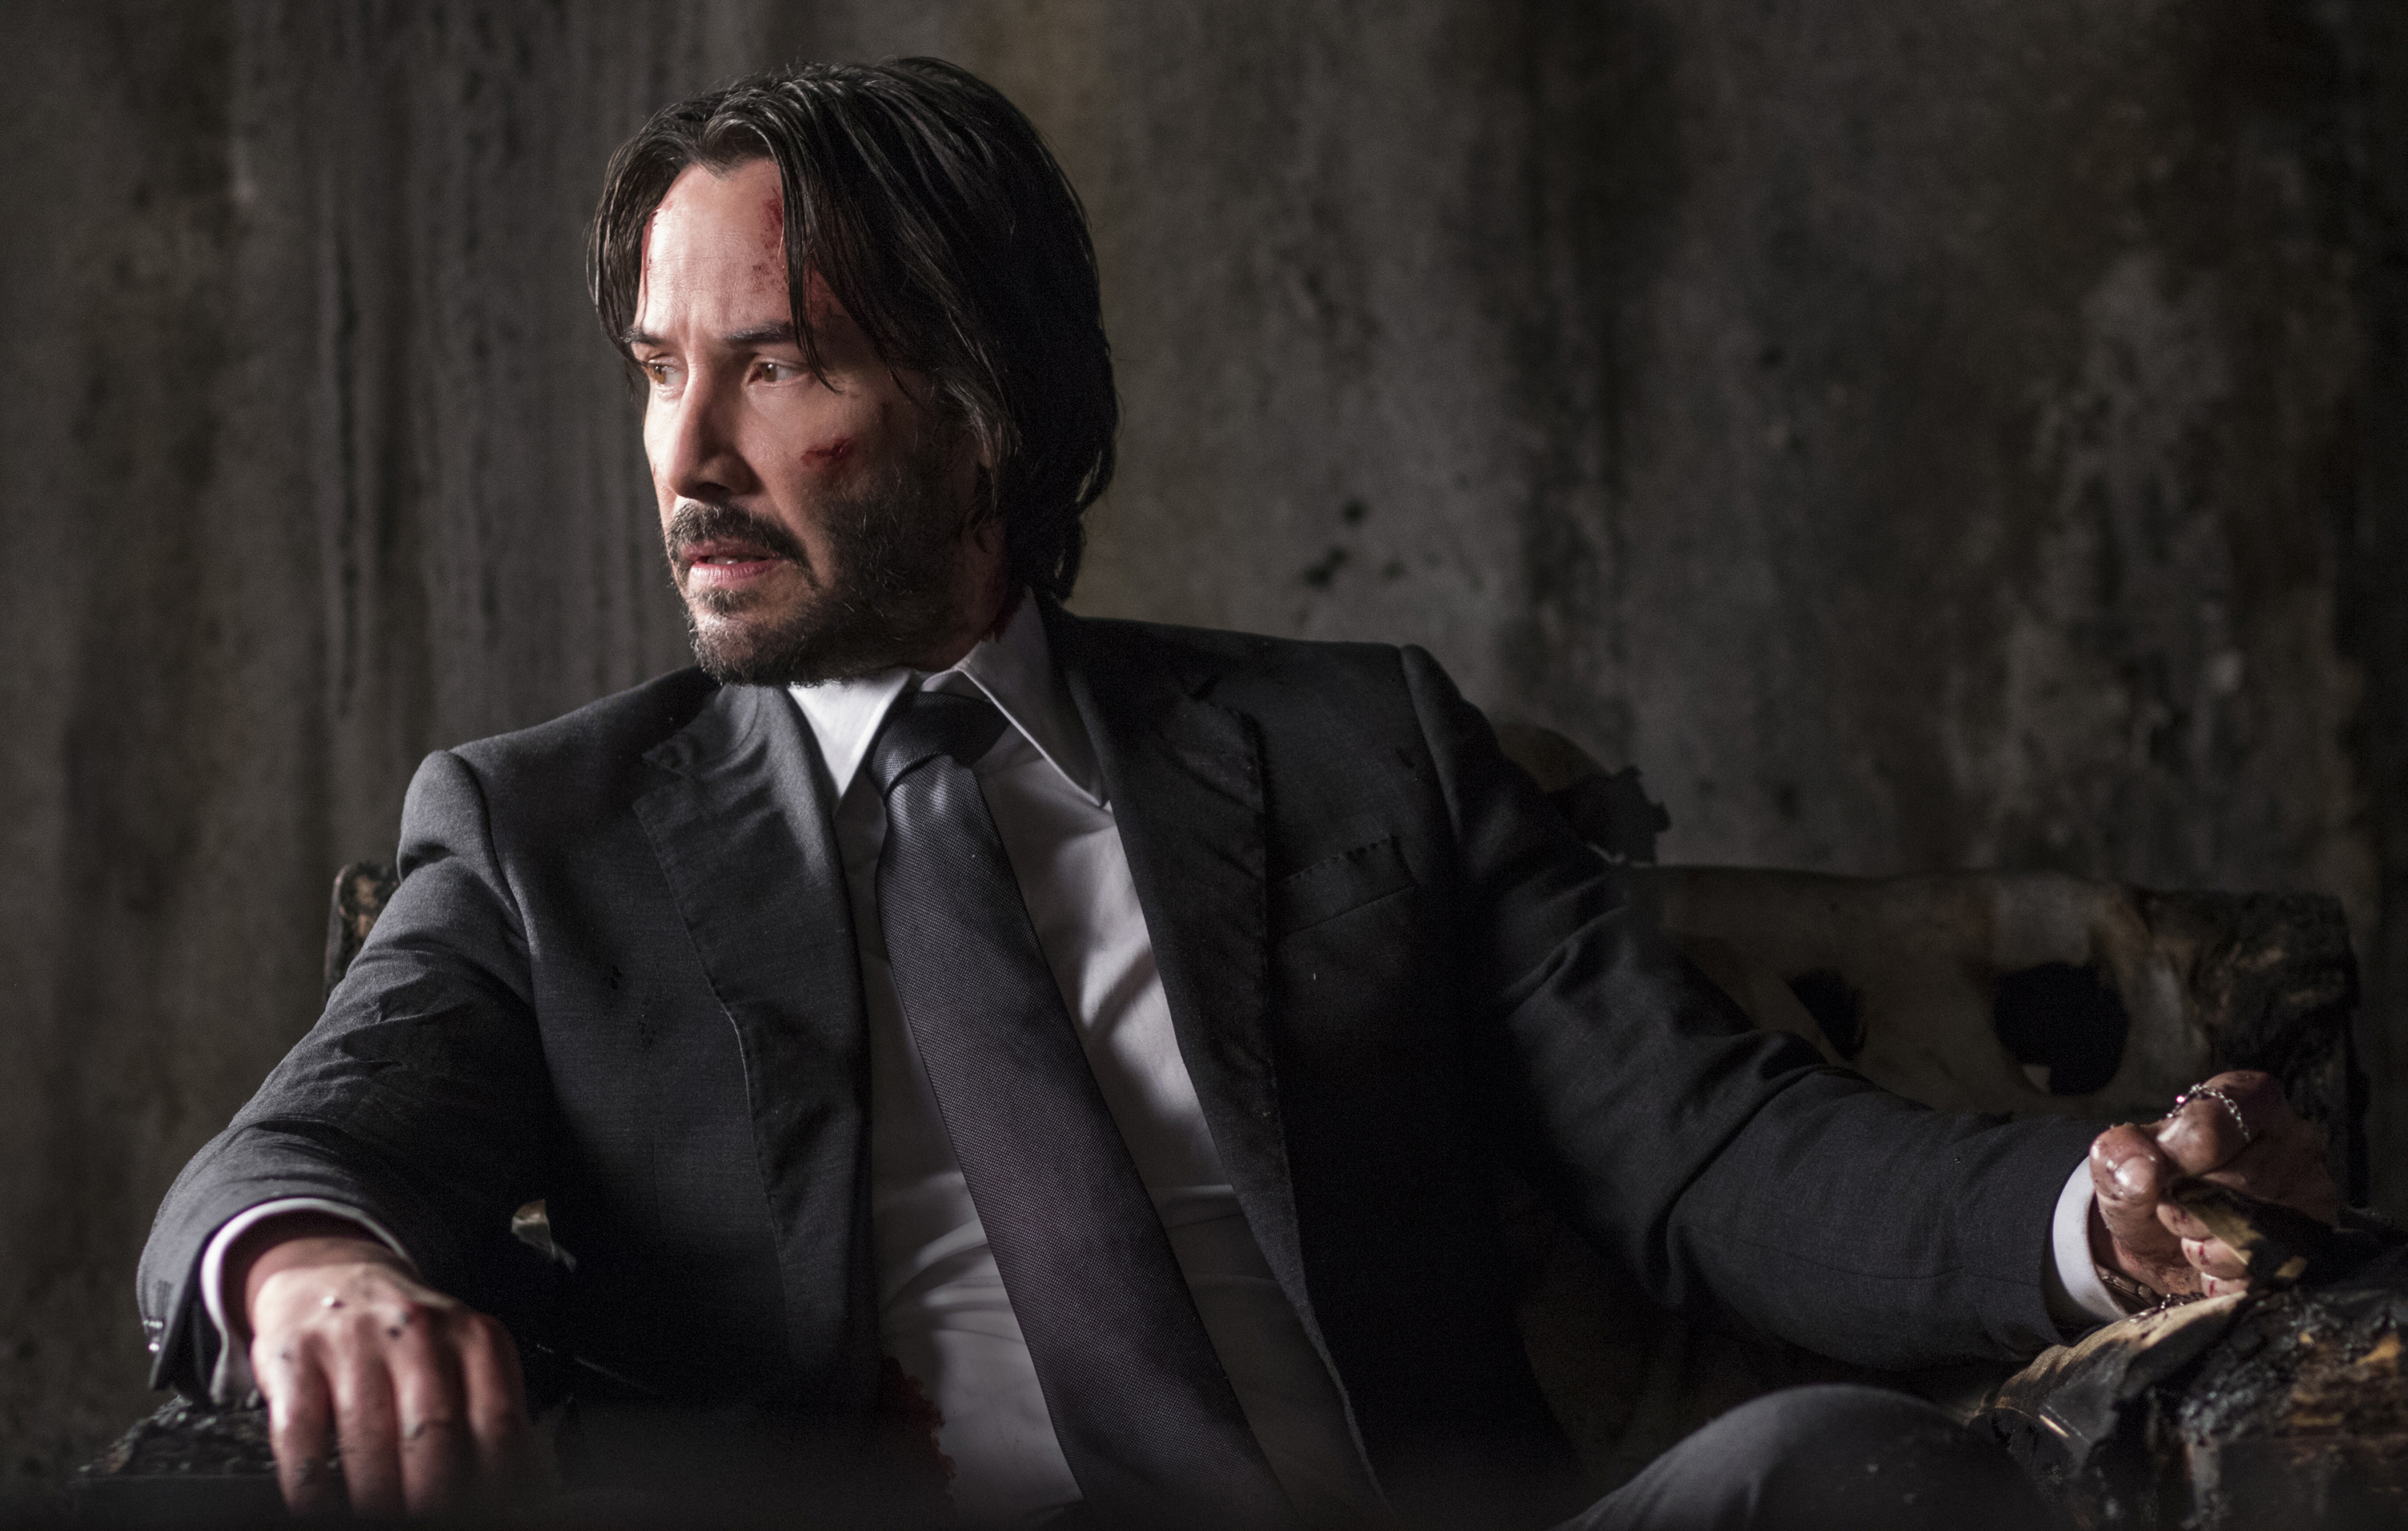 The Tao of Keanu Reeves, From 'Whoa!' to 'John Wick' - Rolling Stone